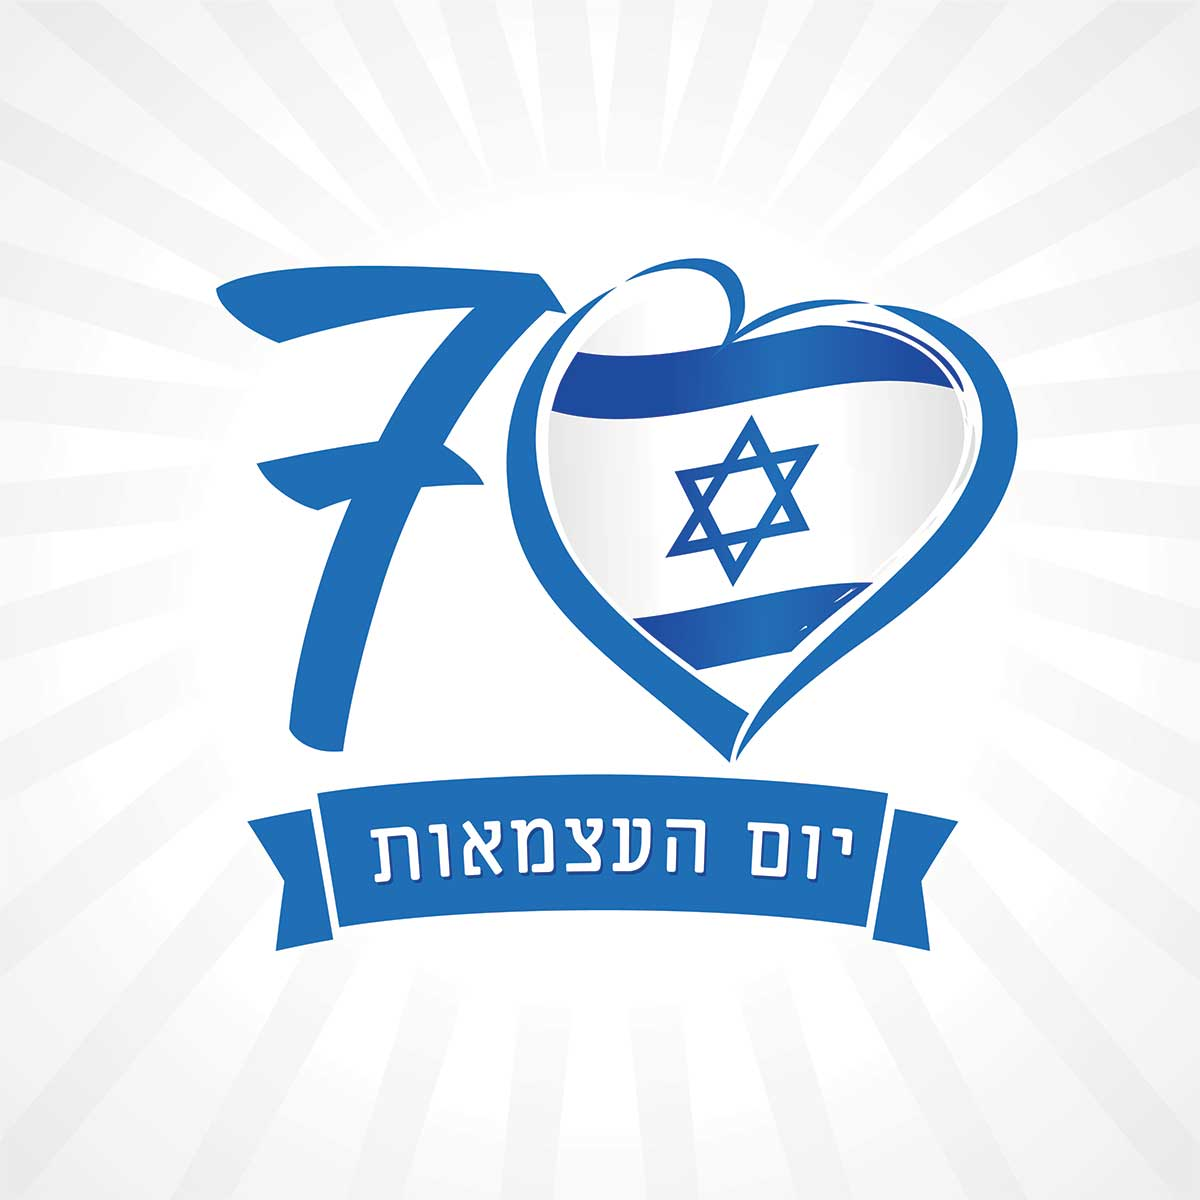 Happy 70th Birthday Israel The Prophetic Significance Of 70